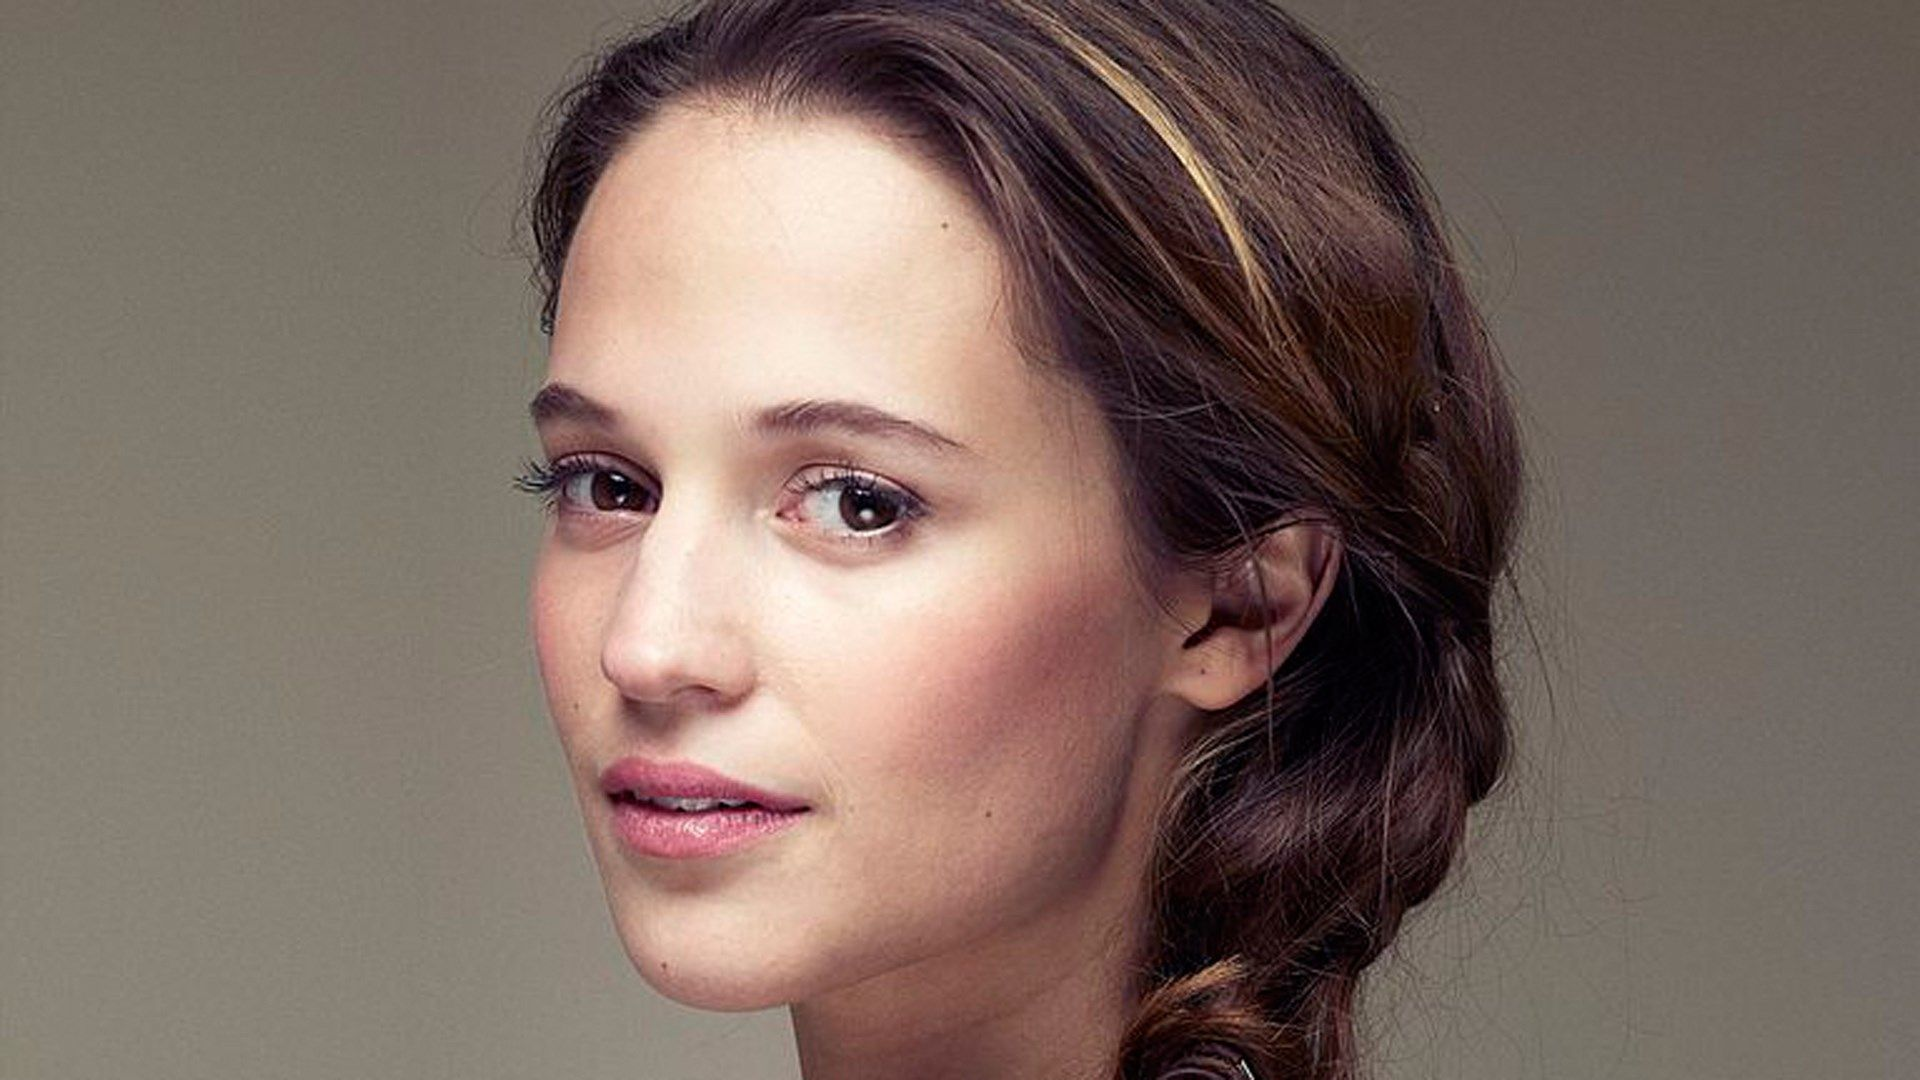 awesome amazing photo hd alicia vikander in high quality